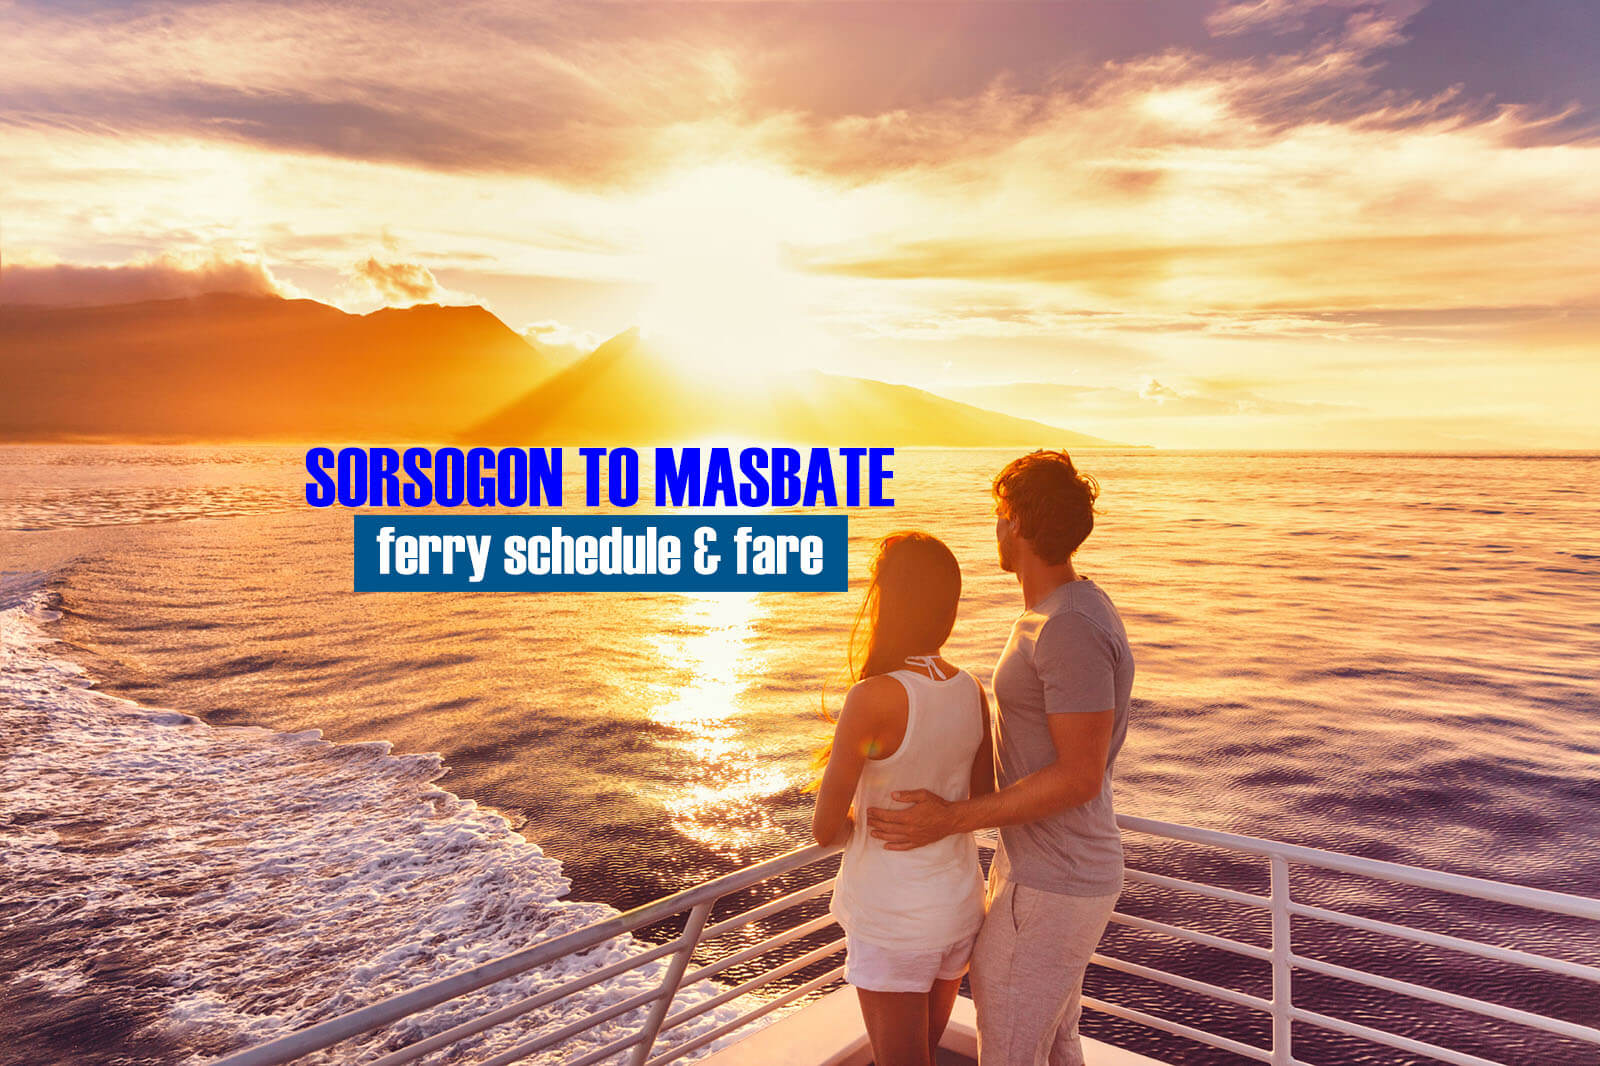 Sorsogon to Masbate: 2020 Ferry Schedule & Fare Rates